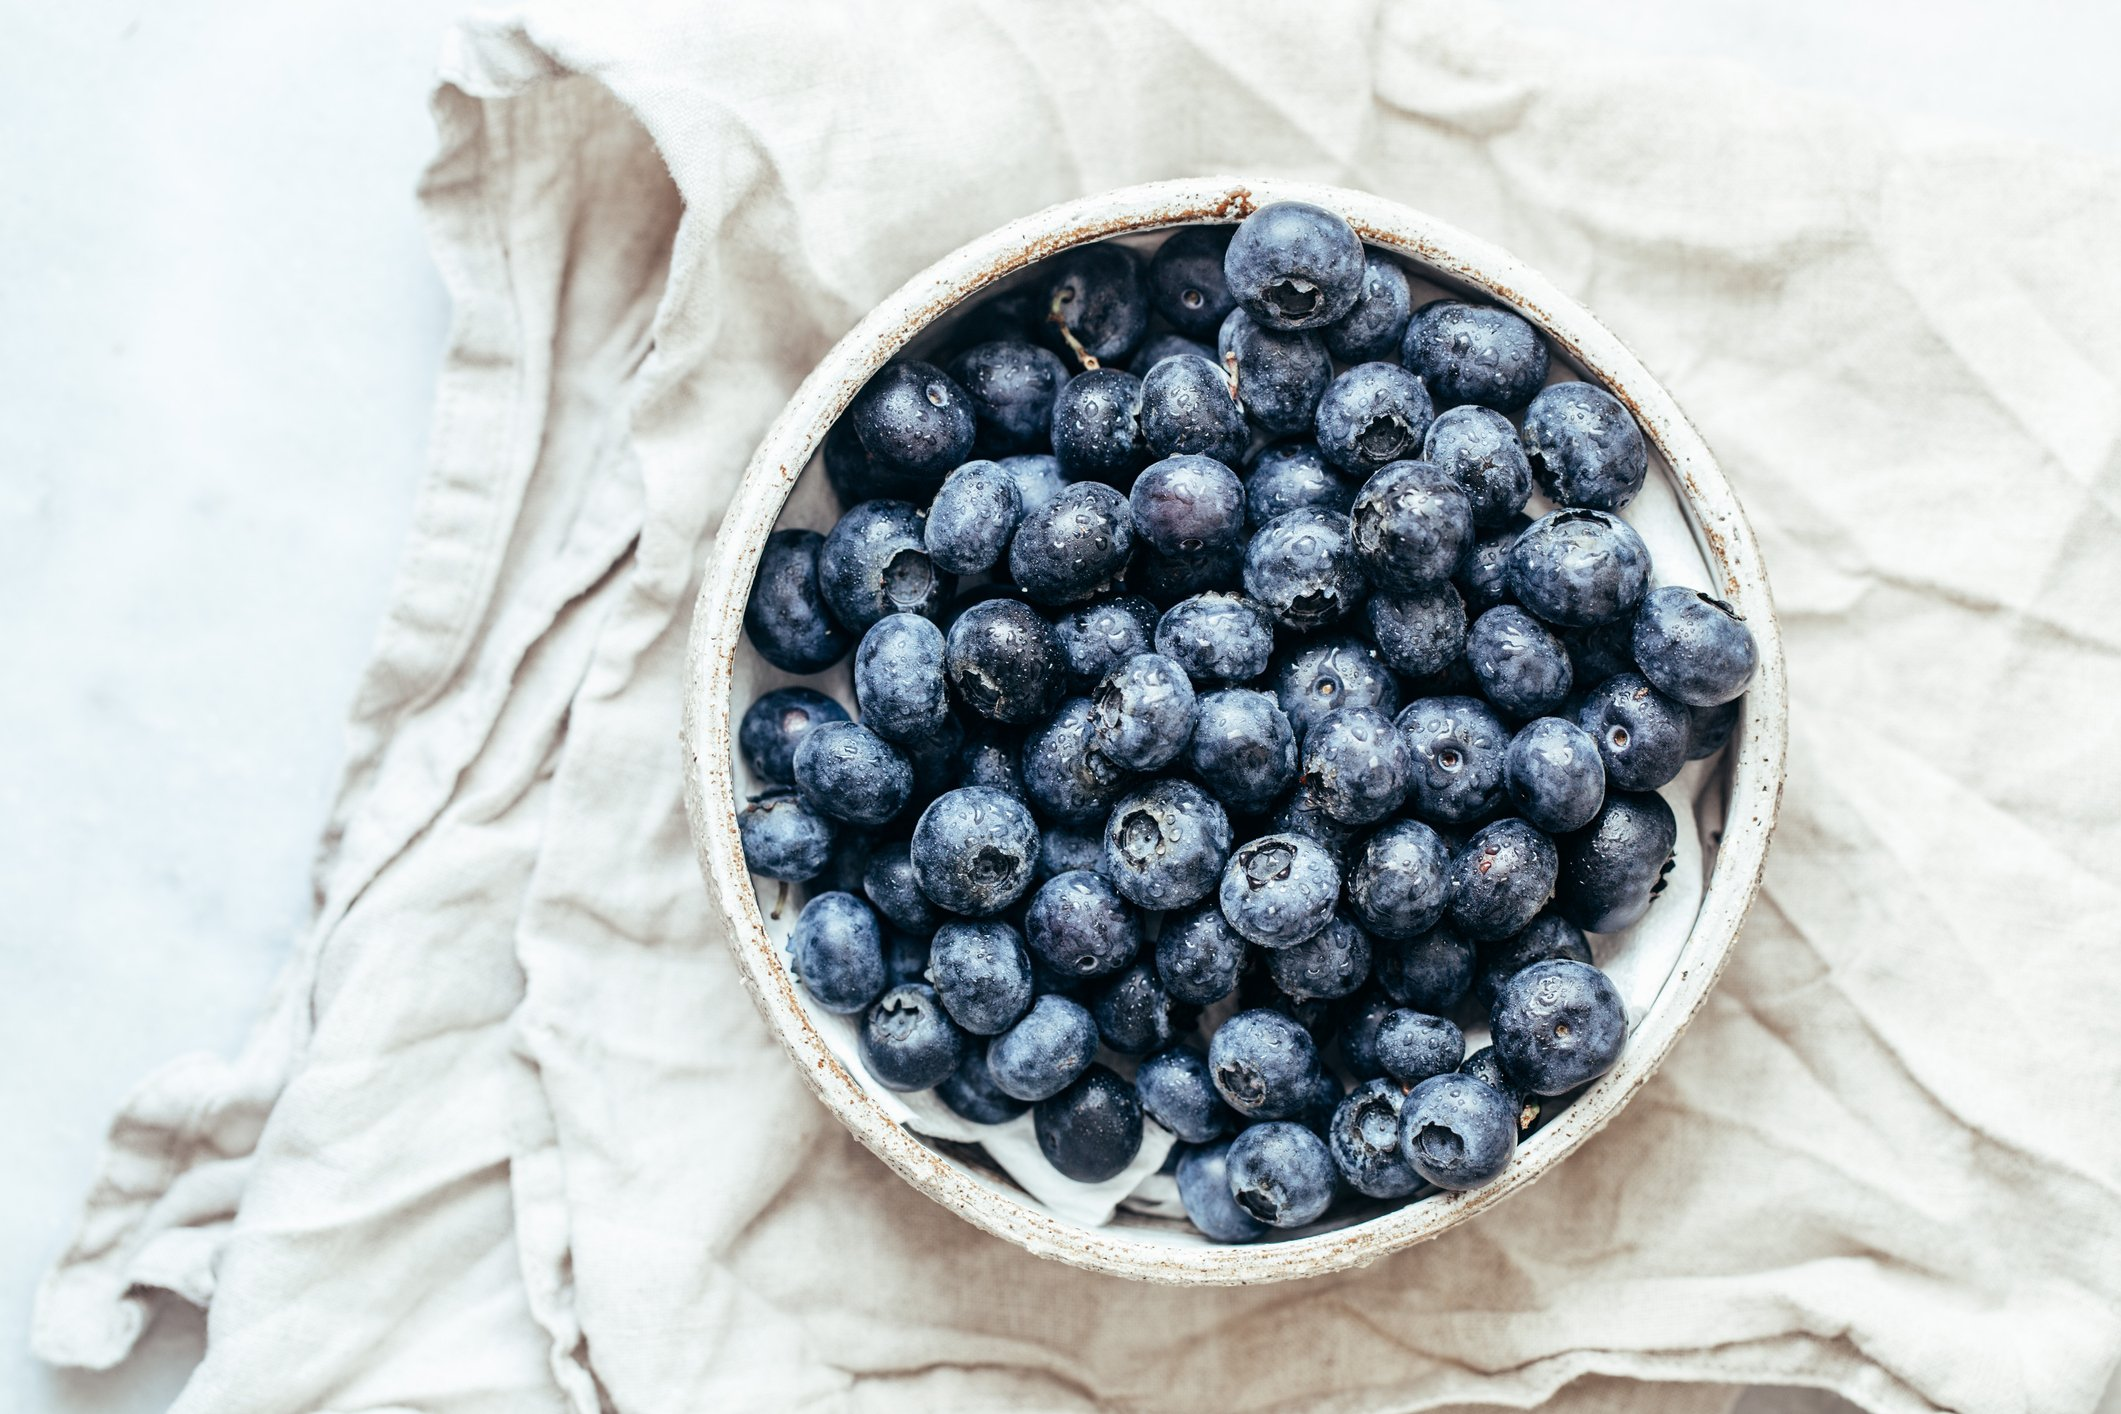 Though not as widely consumed as other fruits in Turkey, blueberries have seen a rise in popularity in recent years. (iStock Photo)